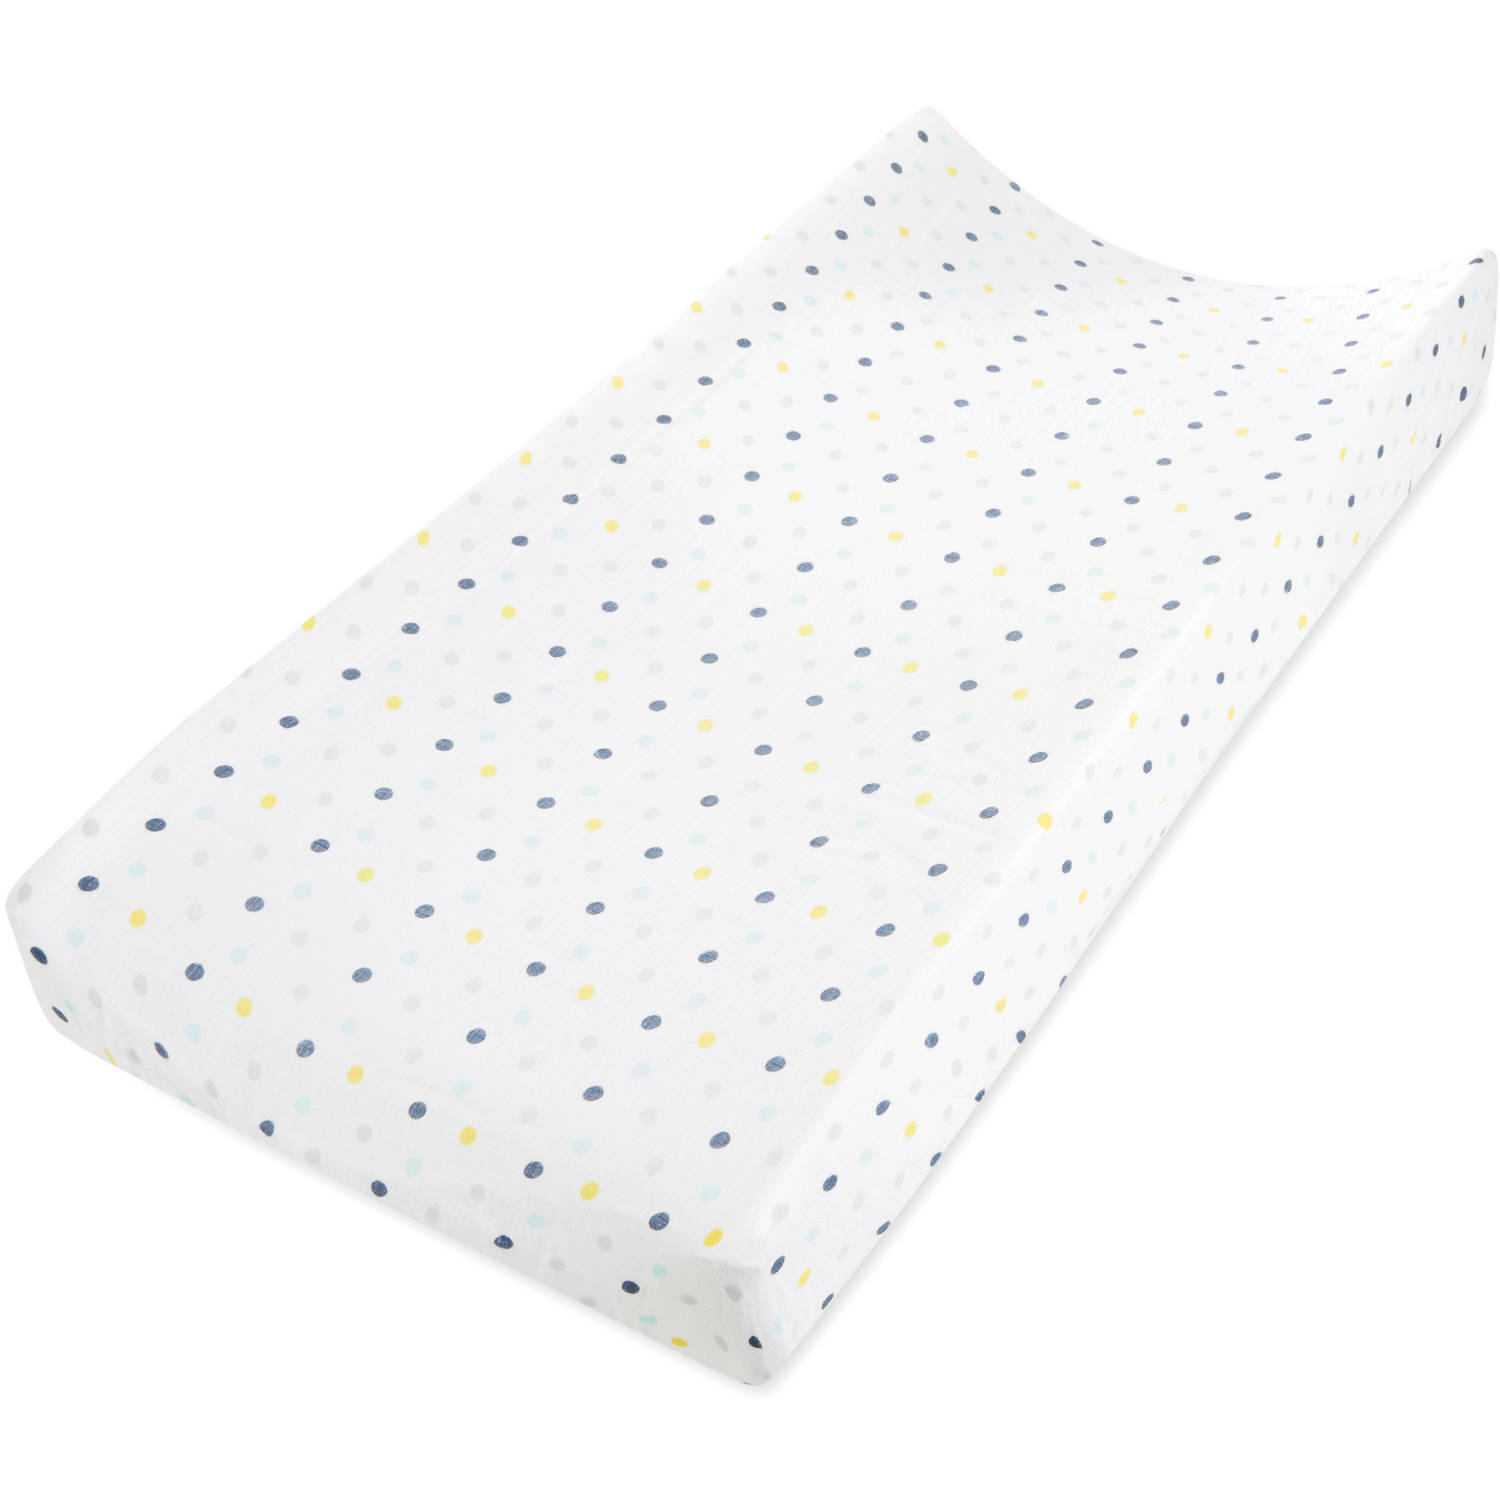 Ideal Baby by the Makers of Aden + Anais Changing Pad Cover, Splash